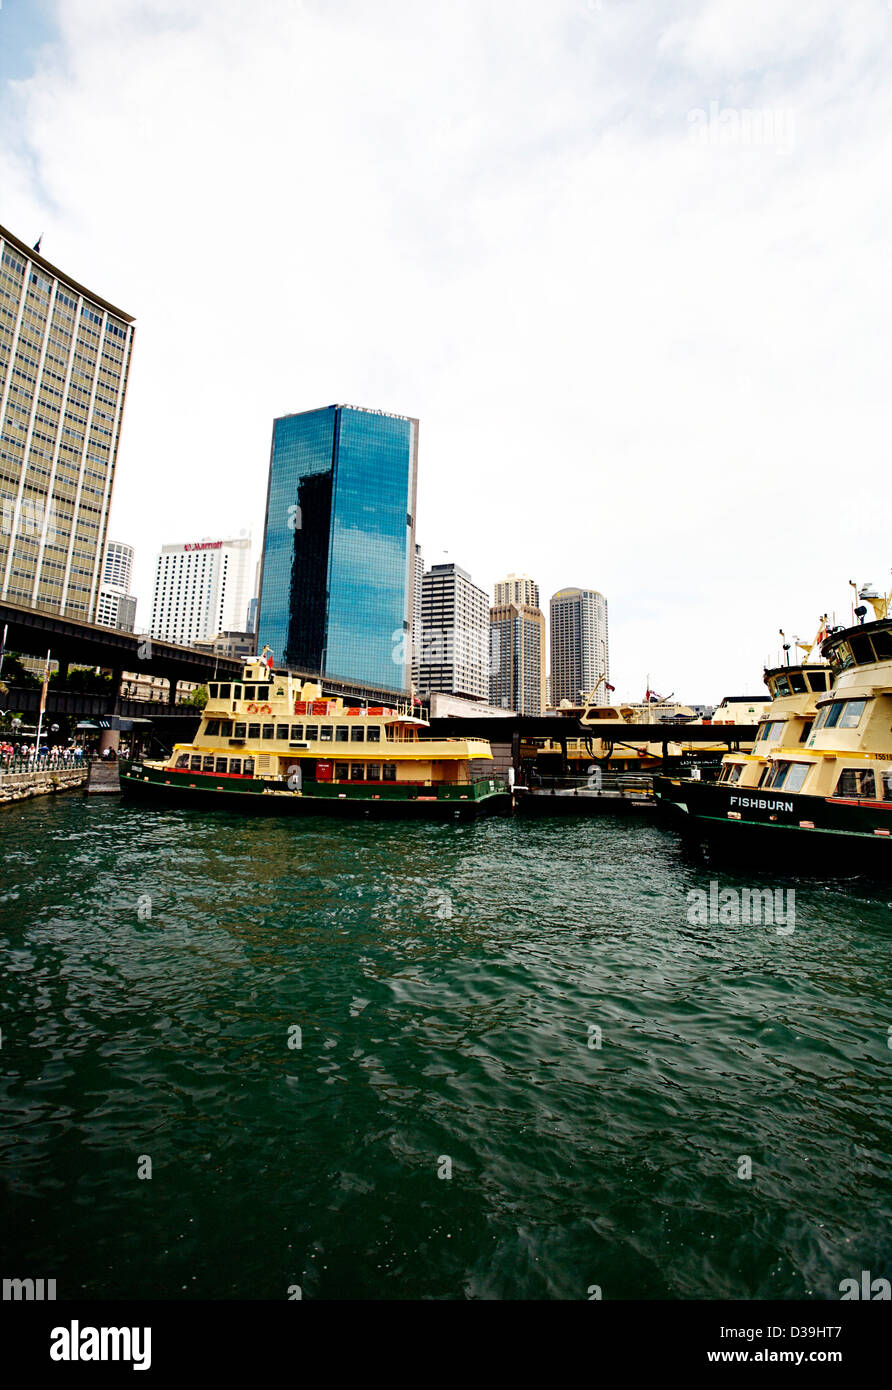 Two Sydney Ferries at Circular Quay, Sydney Australia - Stock Image